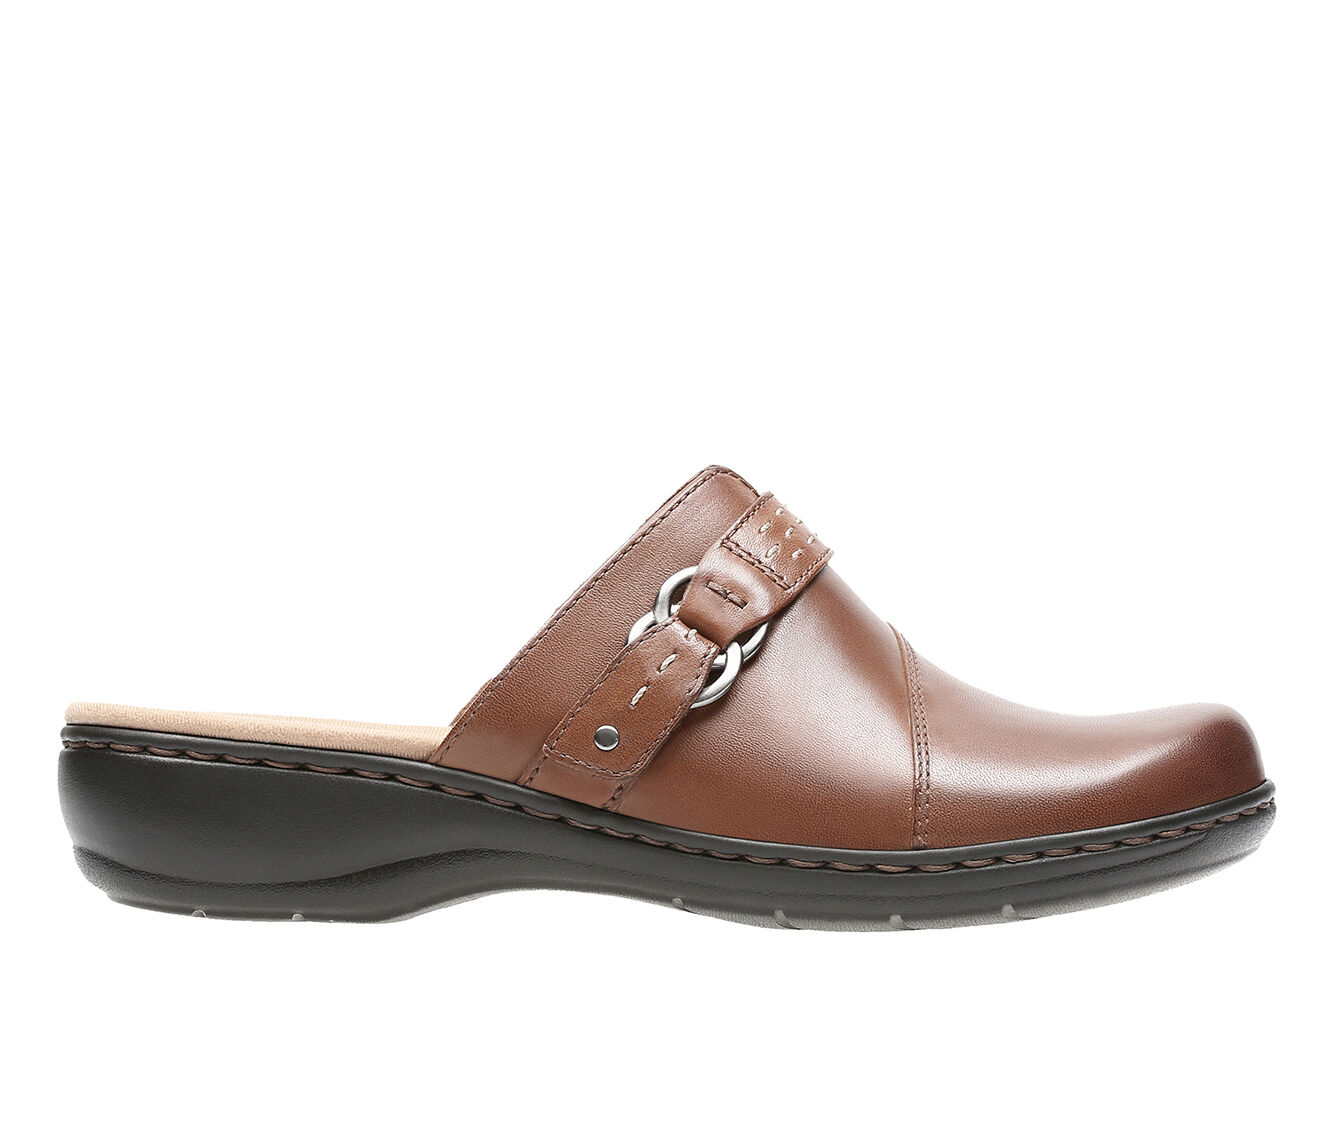 Women's Clarks Leisa Sadie Clogs Dark Tan